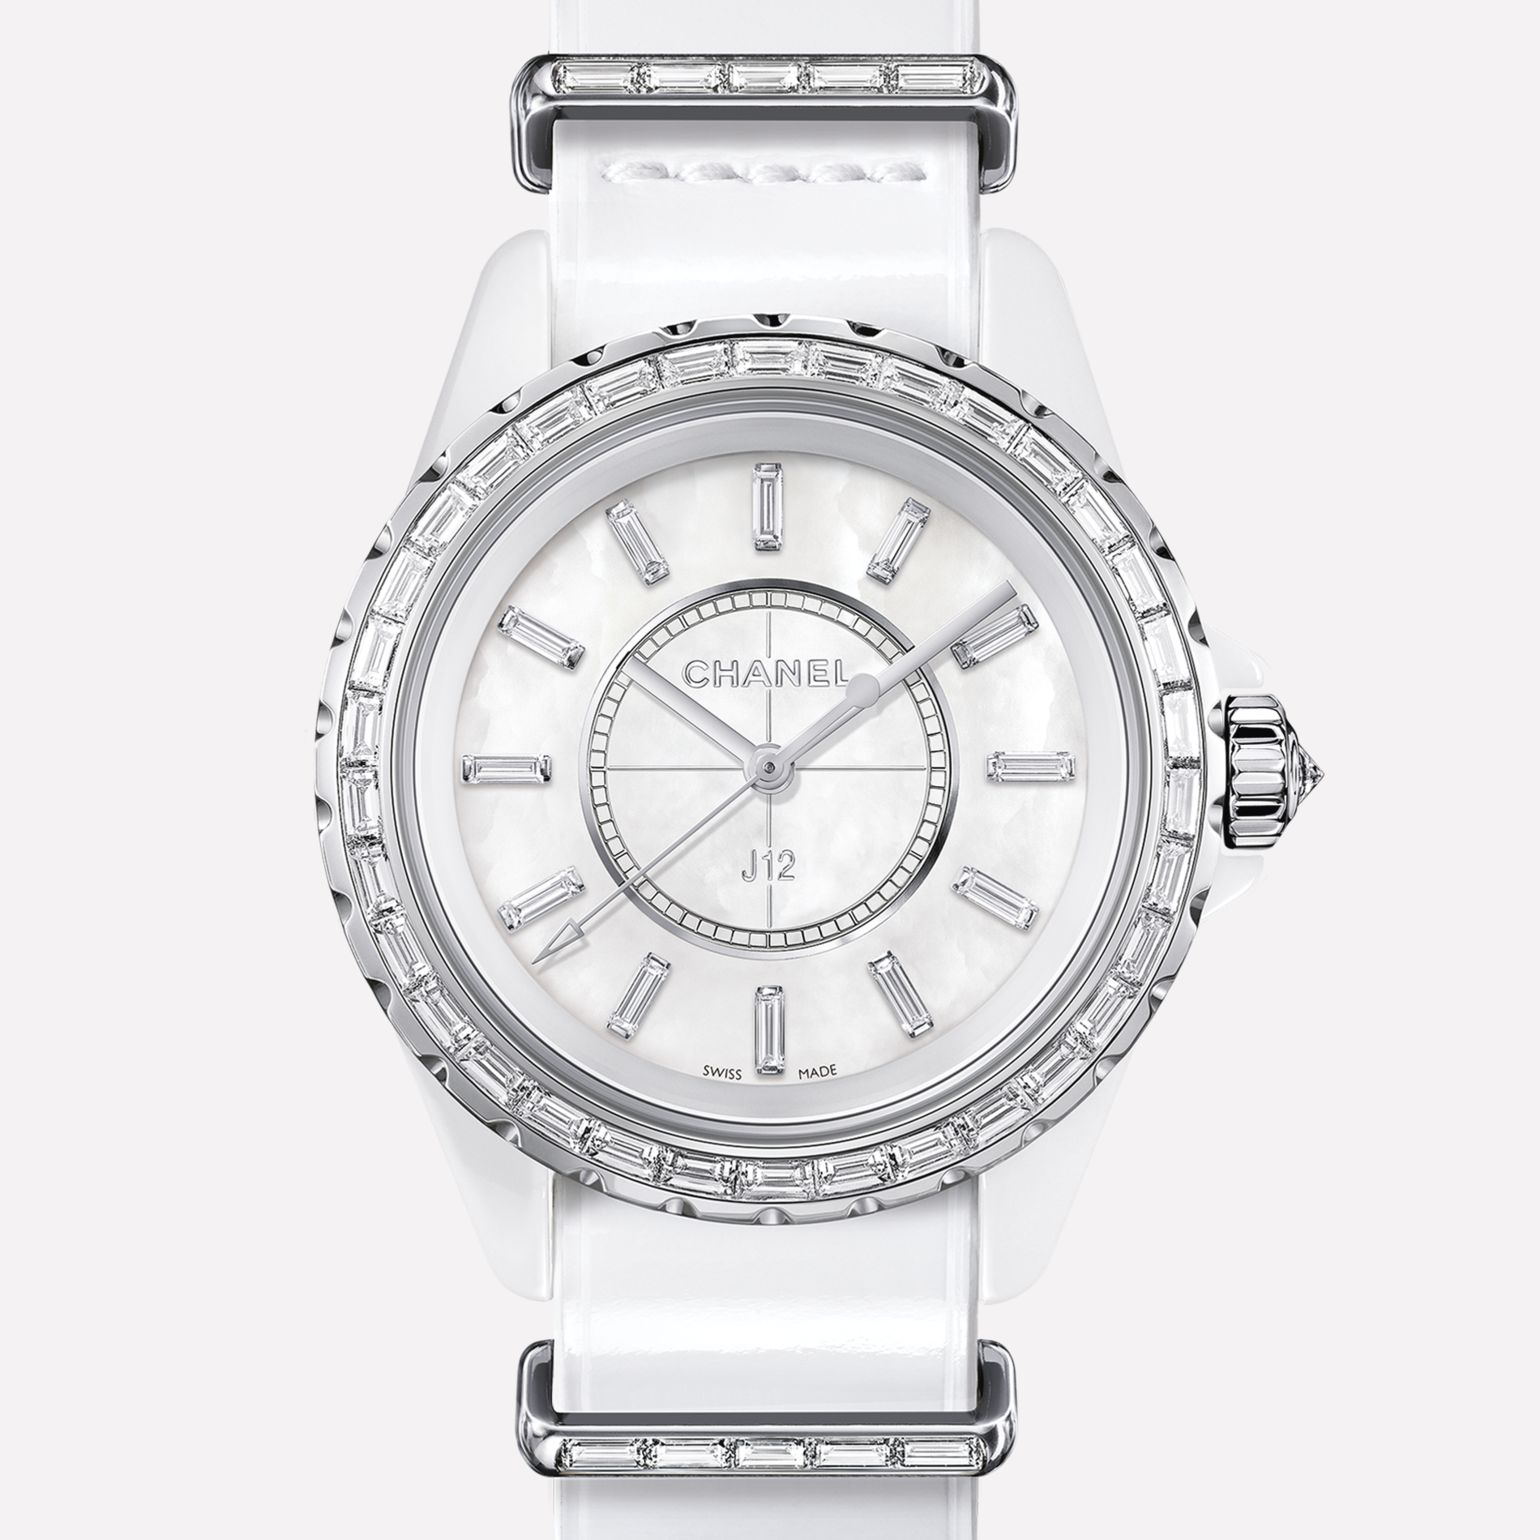 J12-G10 Jewelry Watch White ceramic and white gold, baguette-cut diamond bezel and indicators